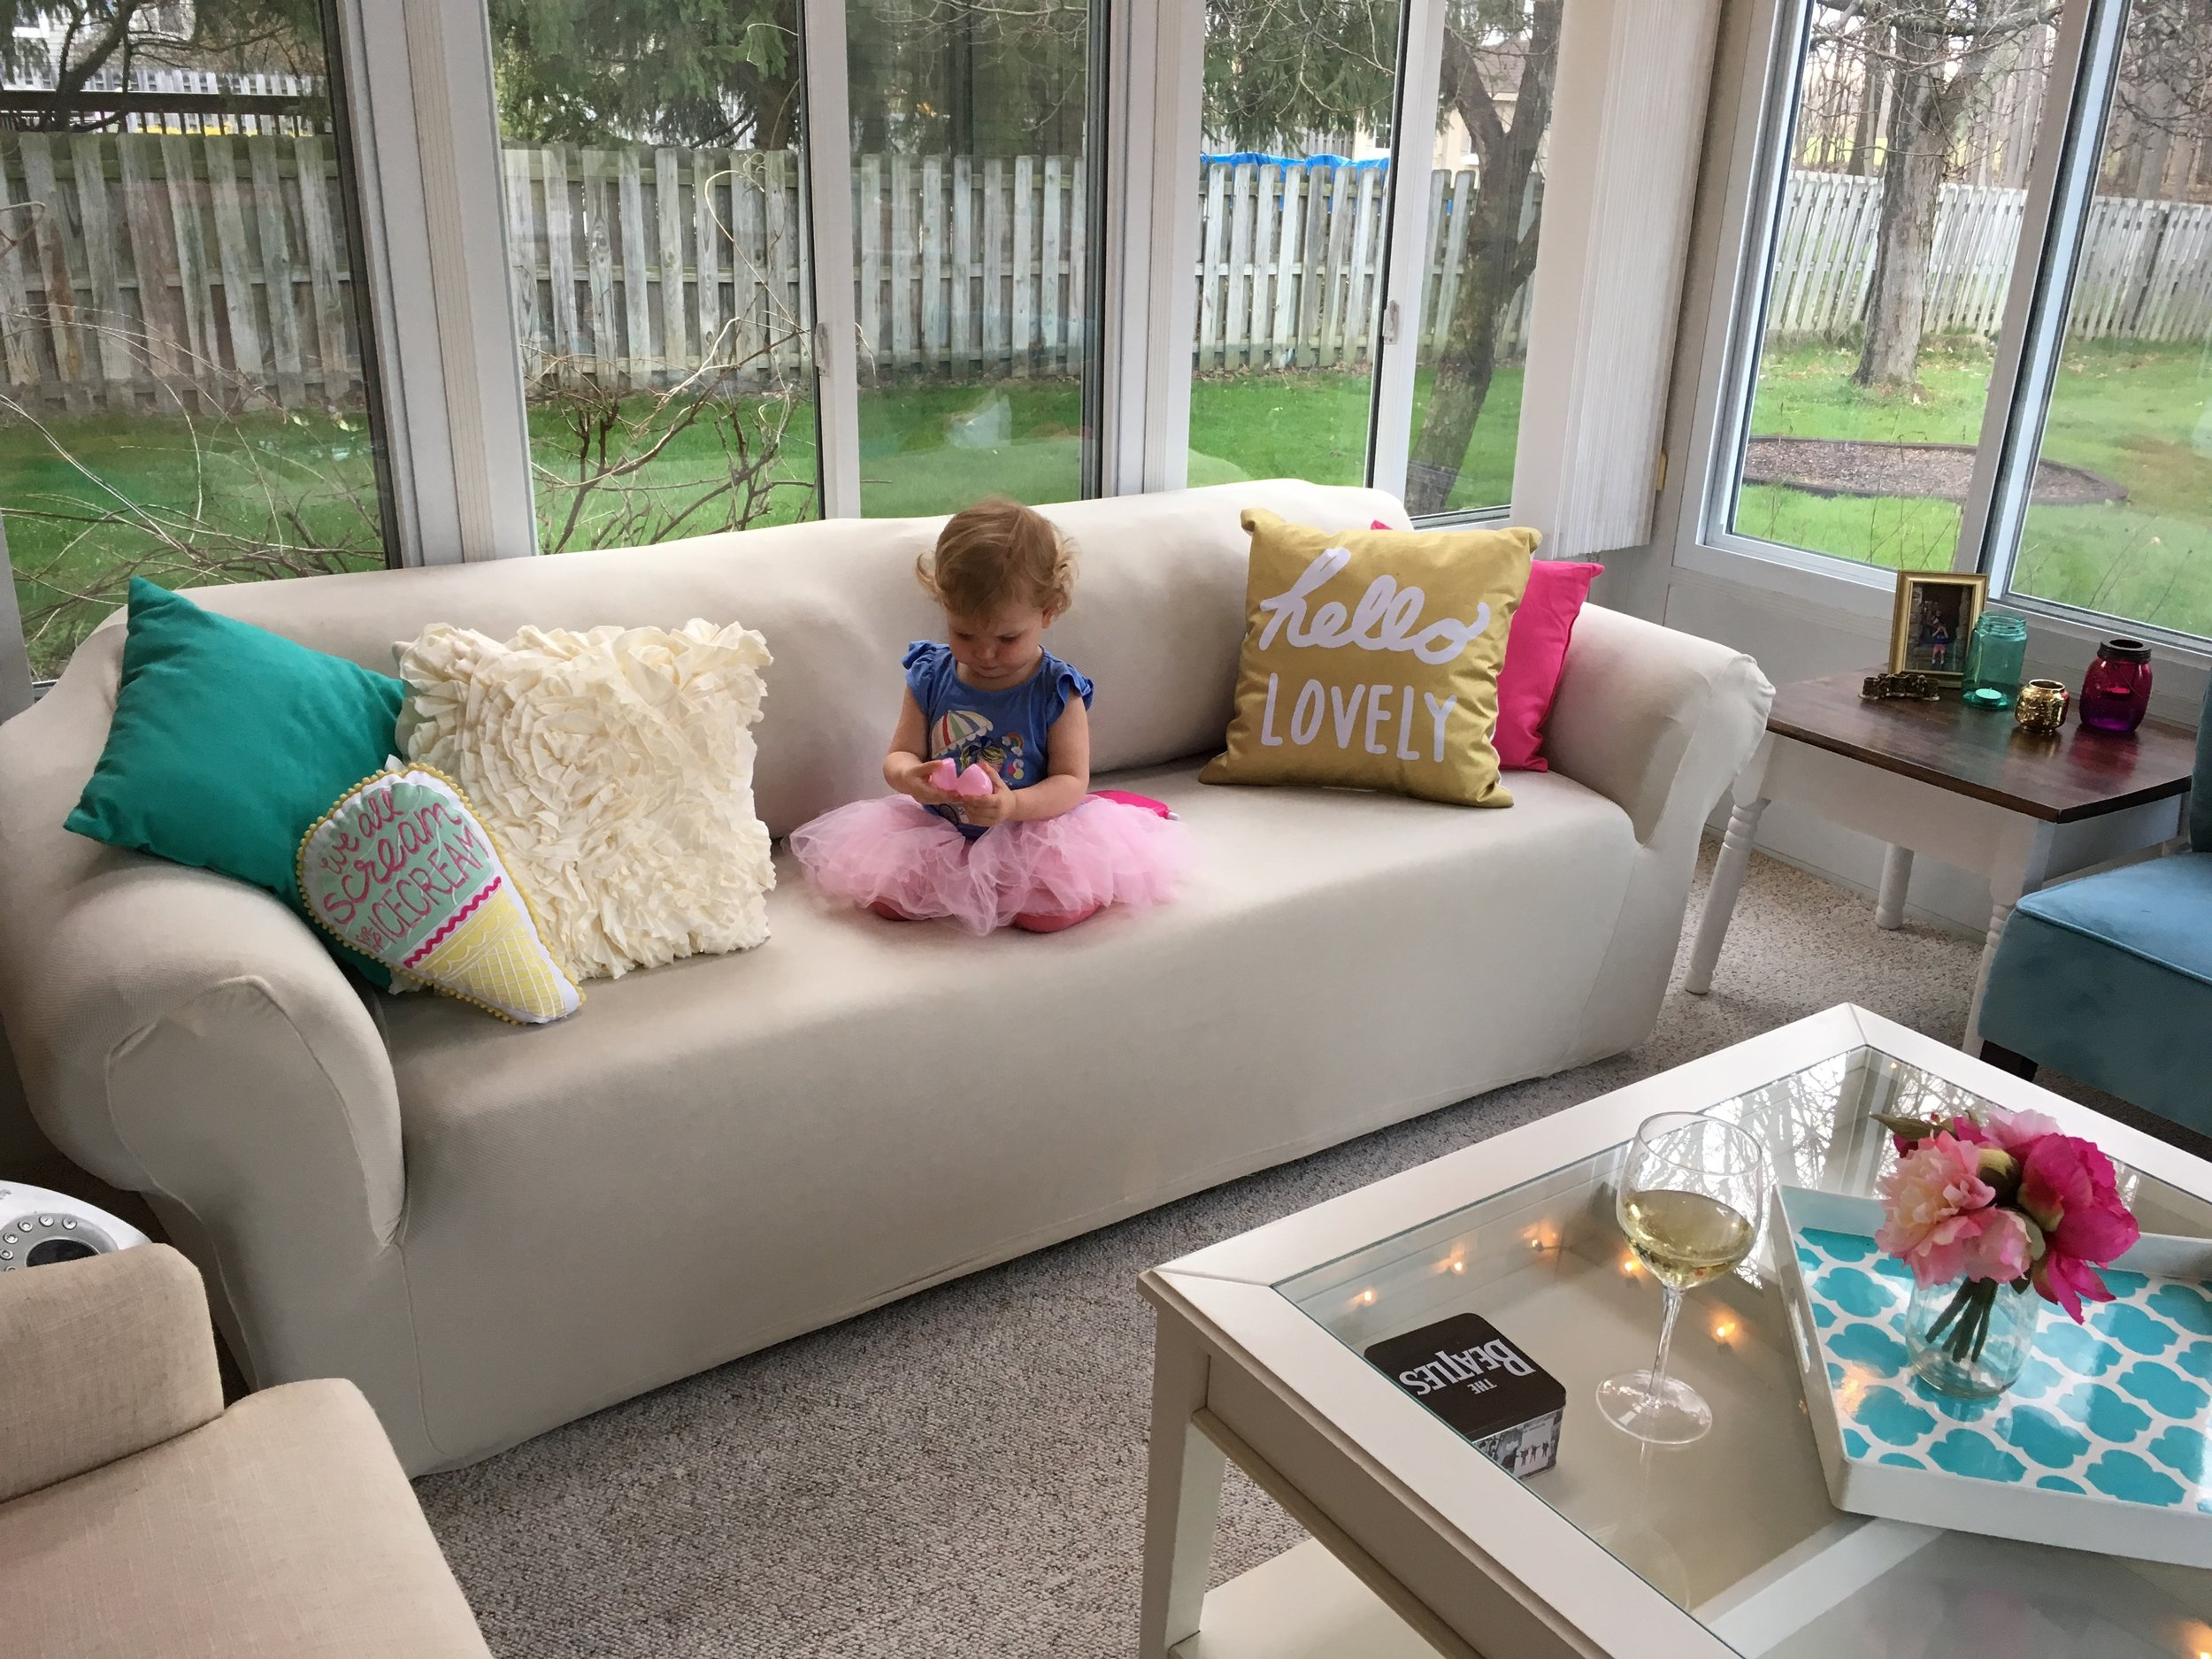 Underneath that off white slipcover is a gray-green perfectly comfortable sofa.